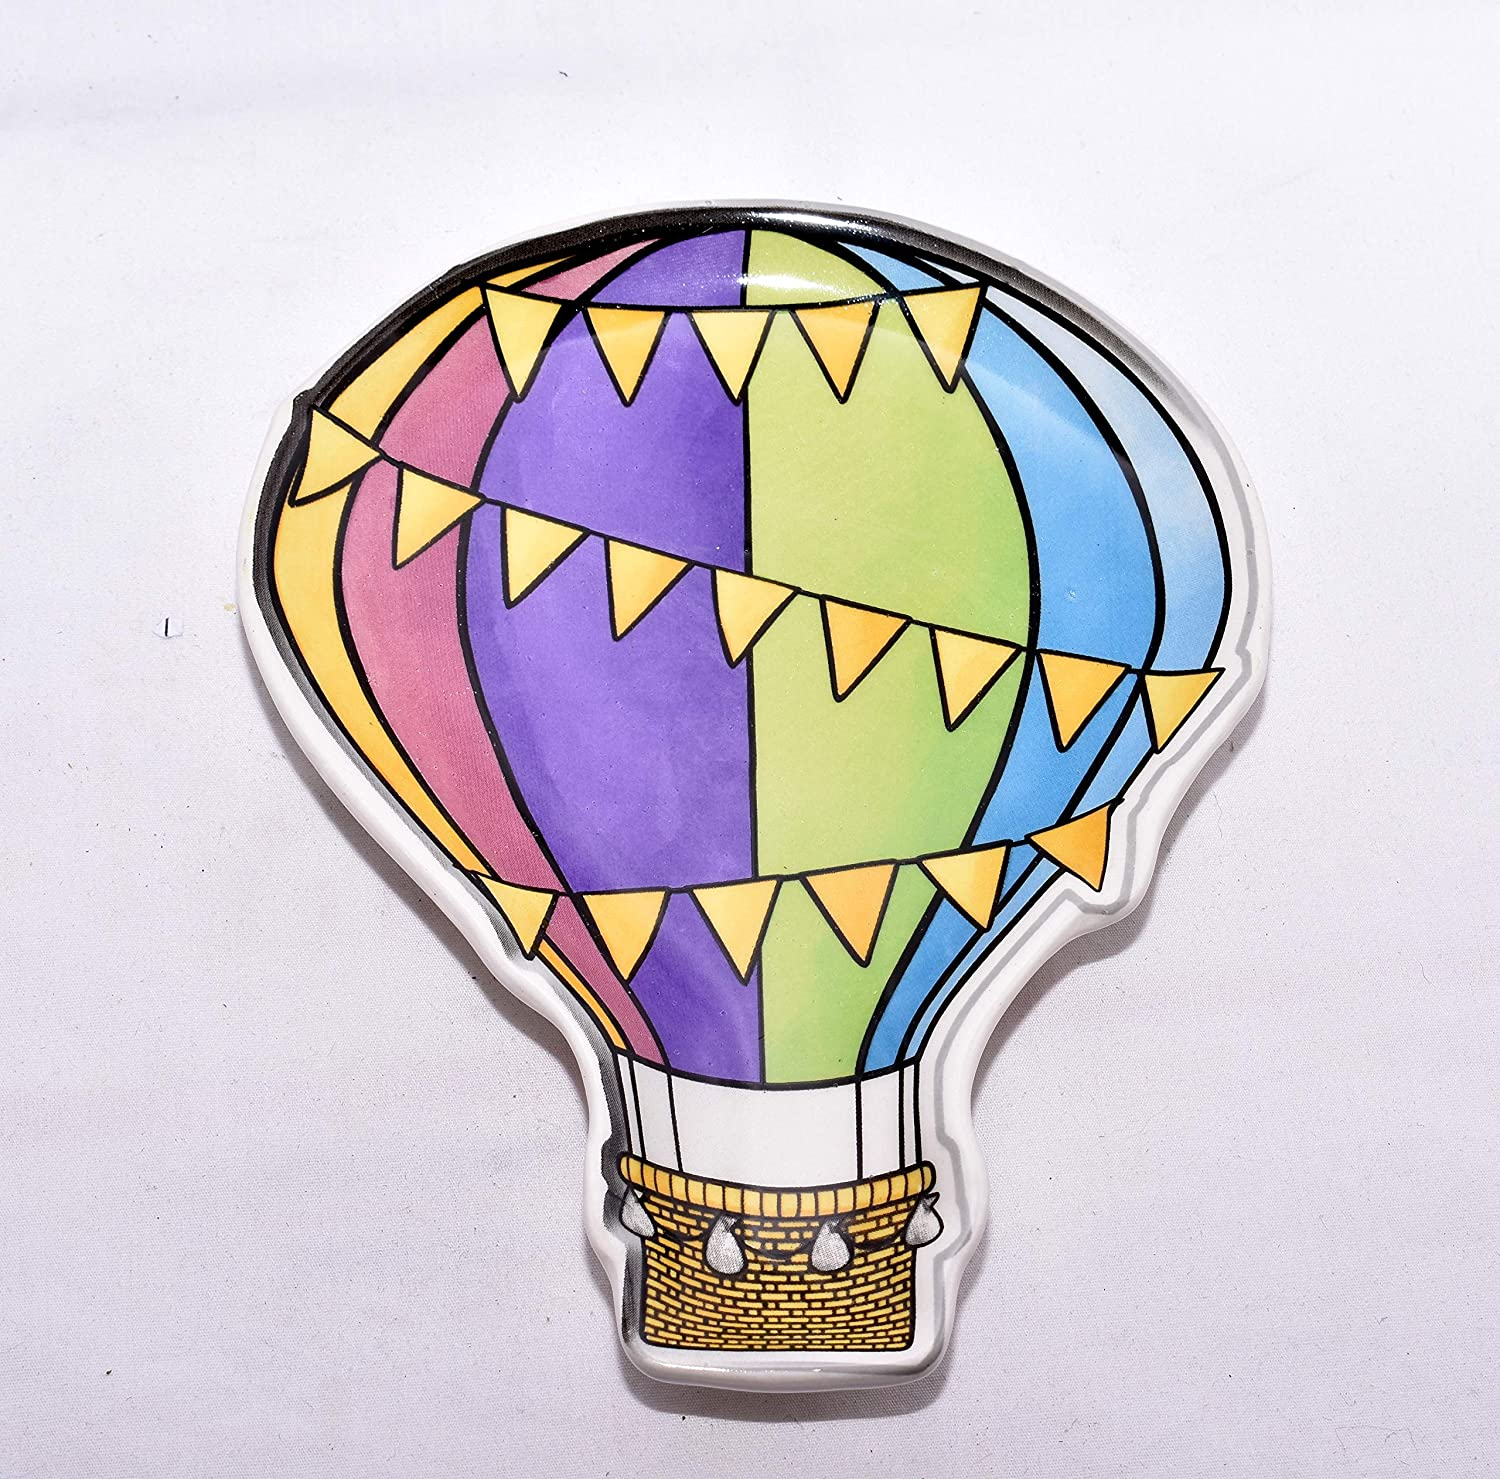 - Amazon.com NEW COLORFUL HOT AIR BALLOON KITCHEN SPOON REST